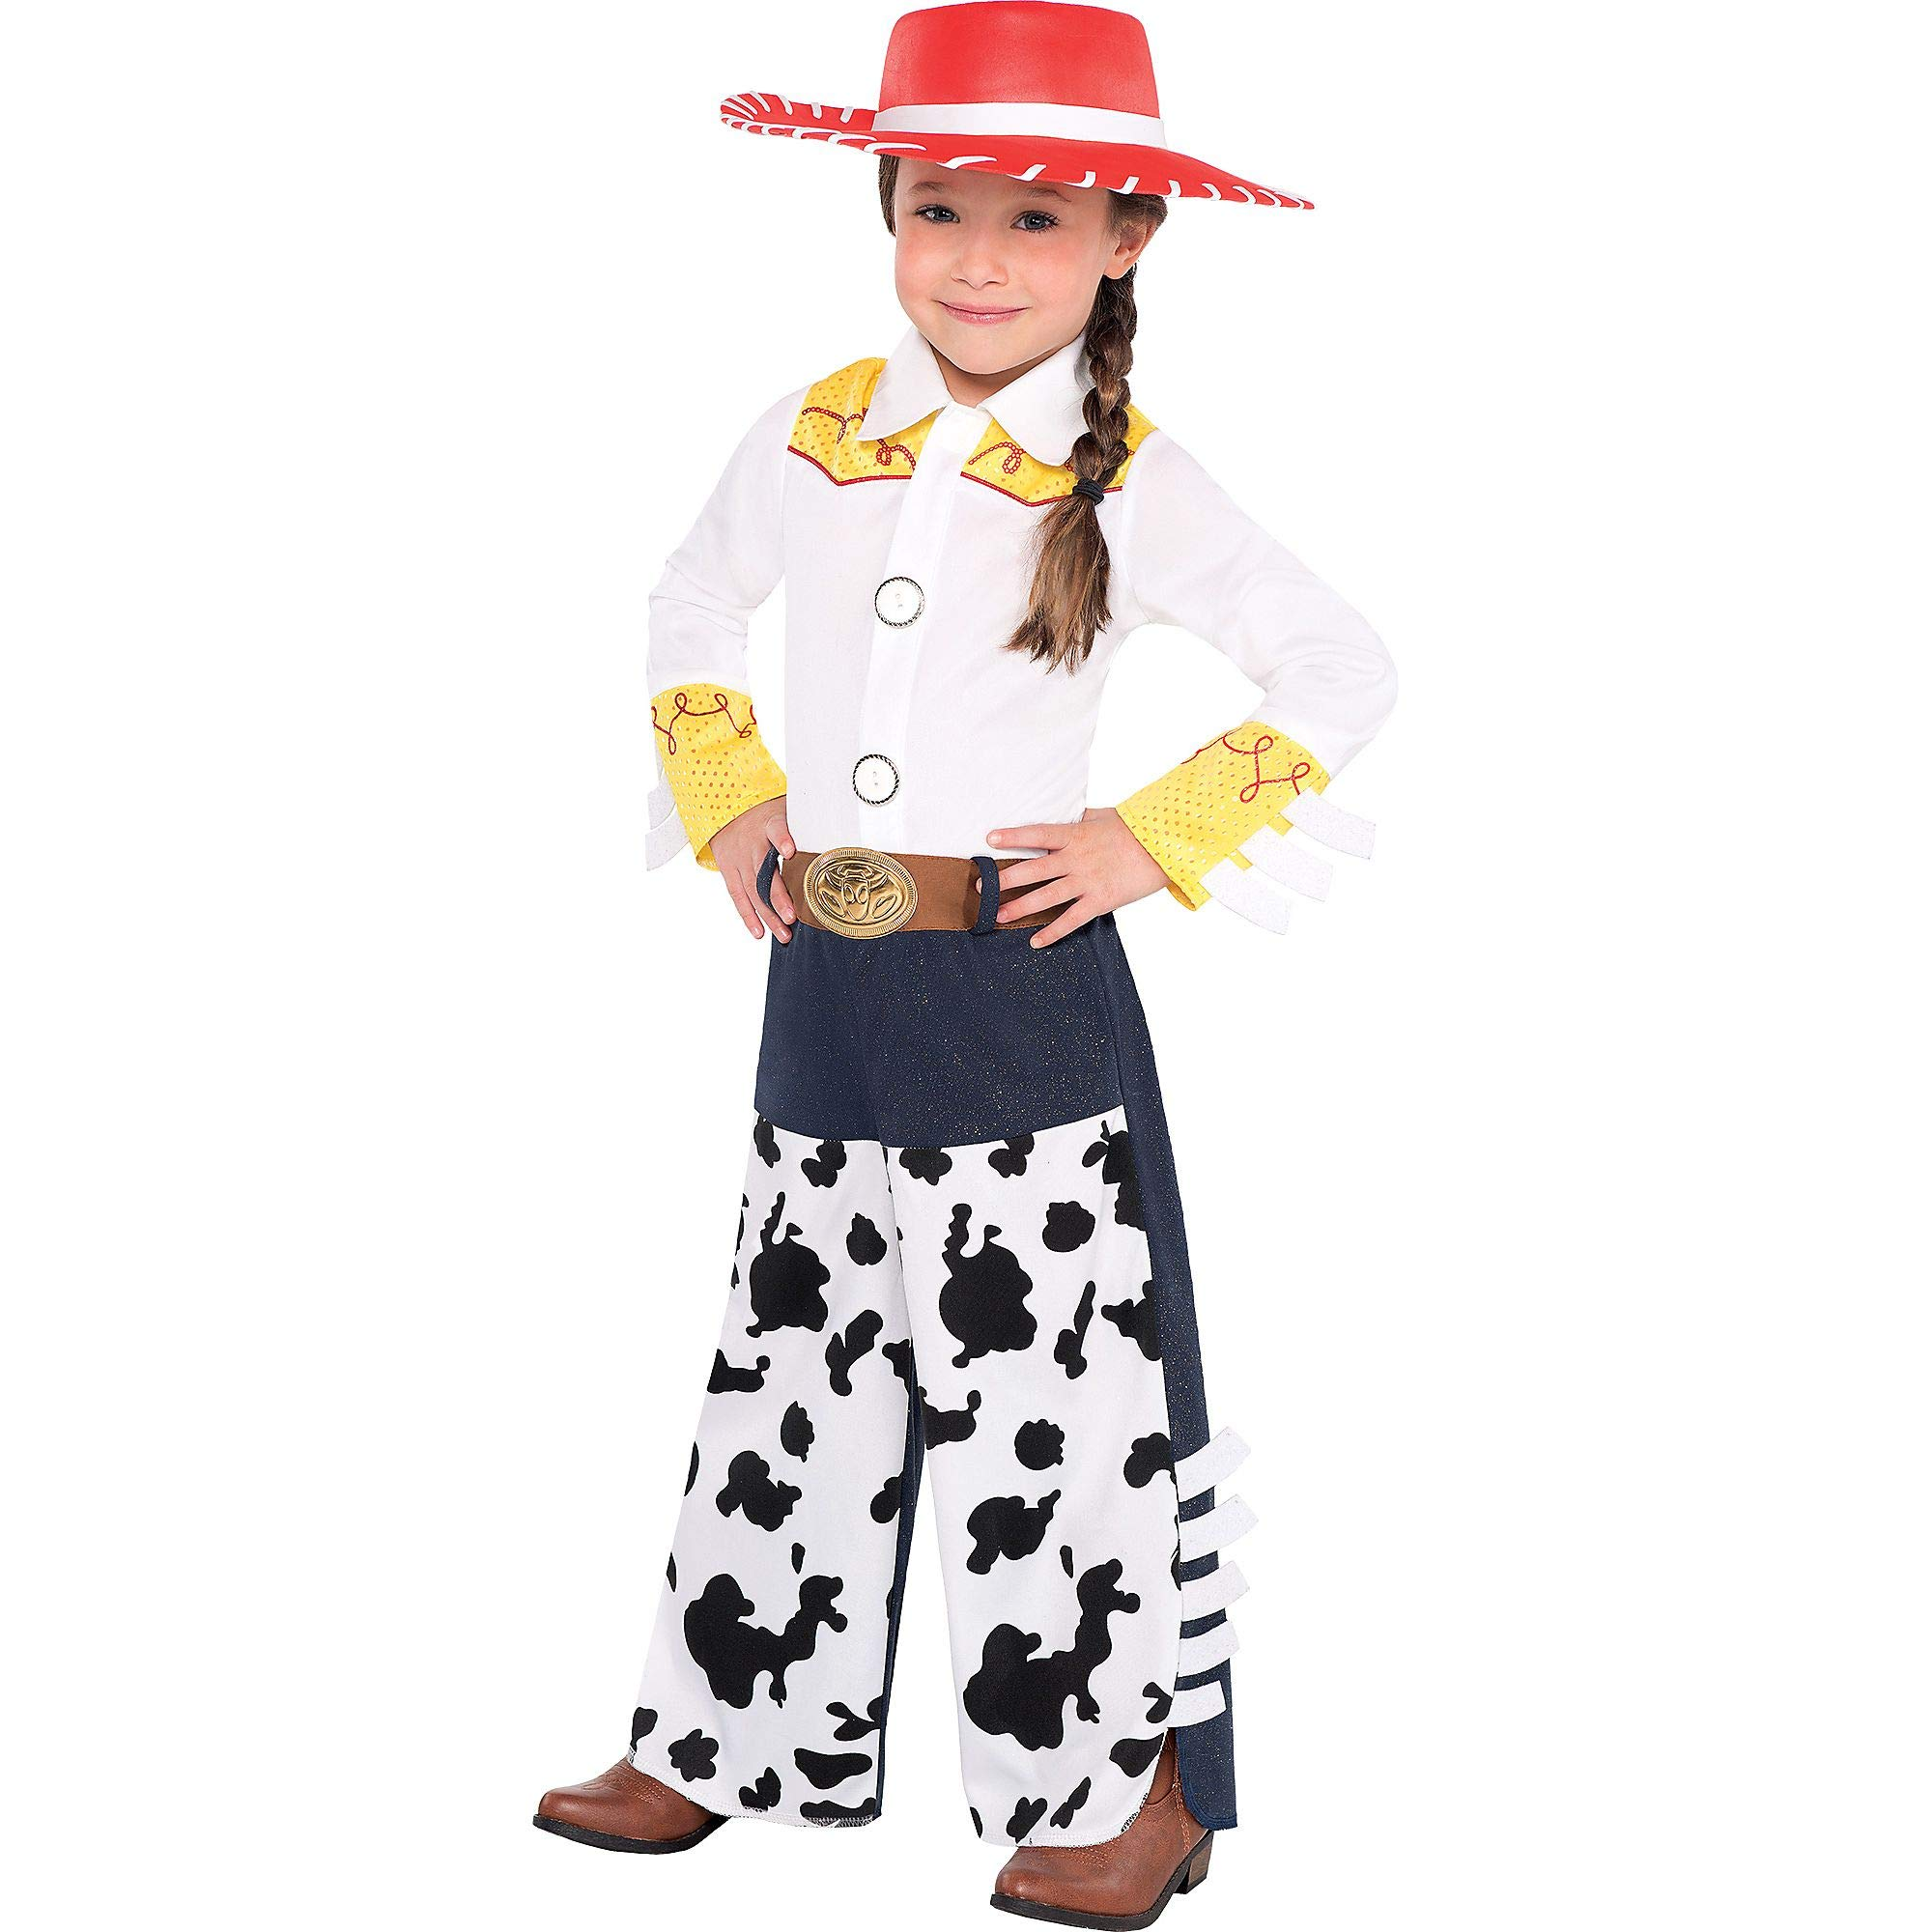 Suit Yourself Jessie Halloween Costume for Toddler Girls, Toy Story, 3-4T, Includes Accessories